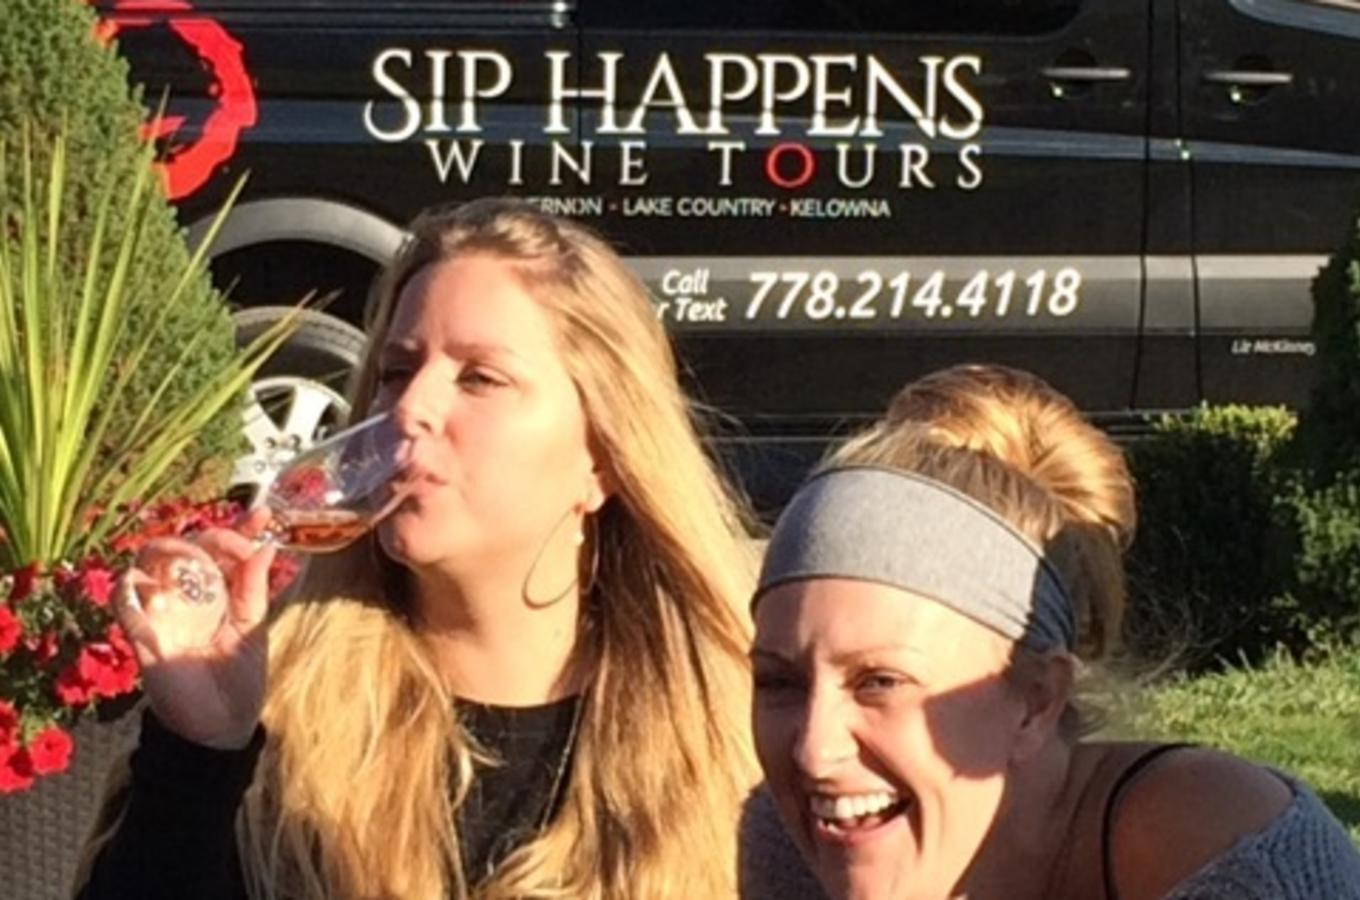 Sip Happens Wine Tours: Great Wine & Good Times!